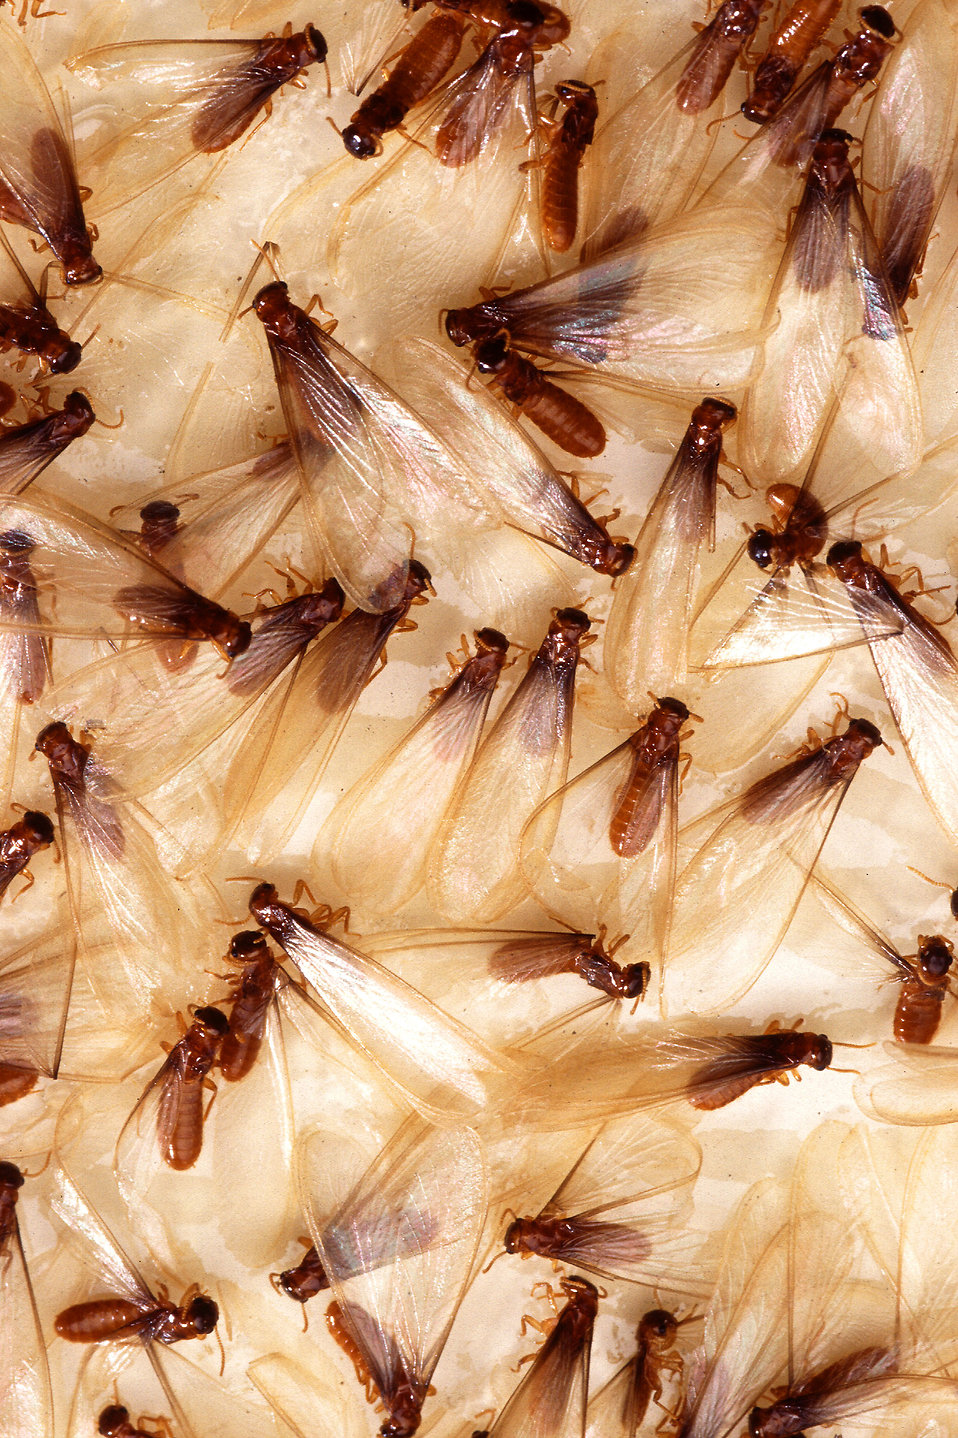 Fomosan termite alates : Free Stock Photo